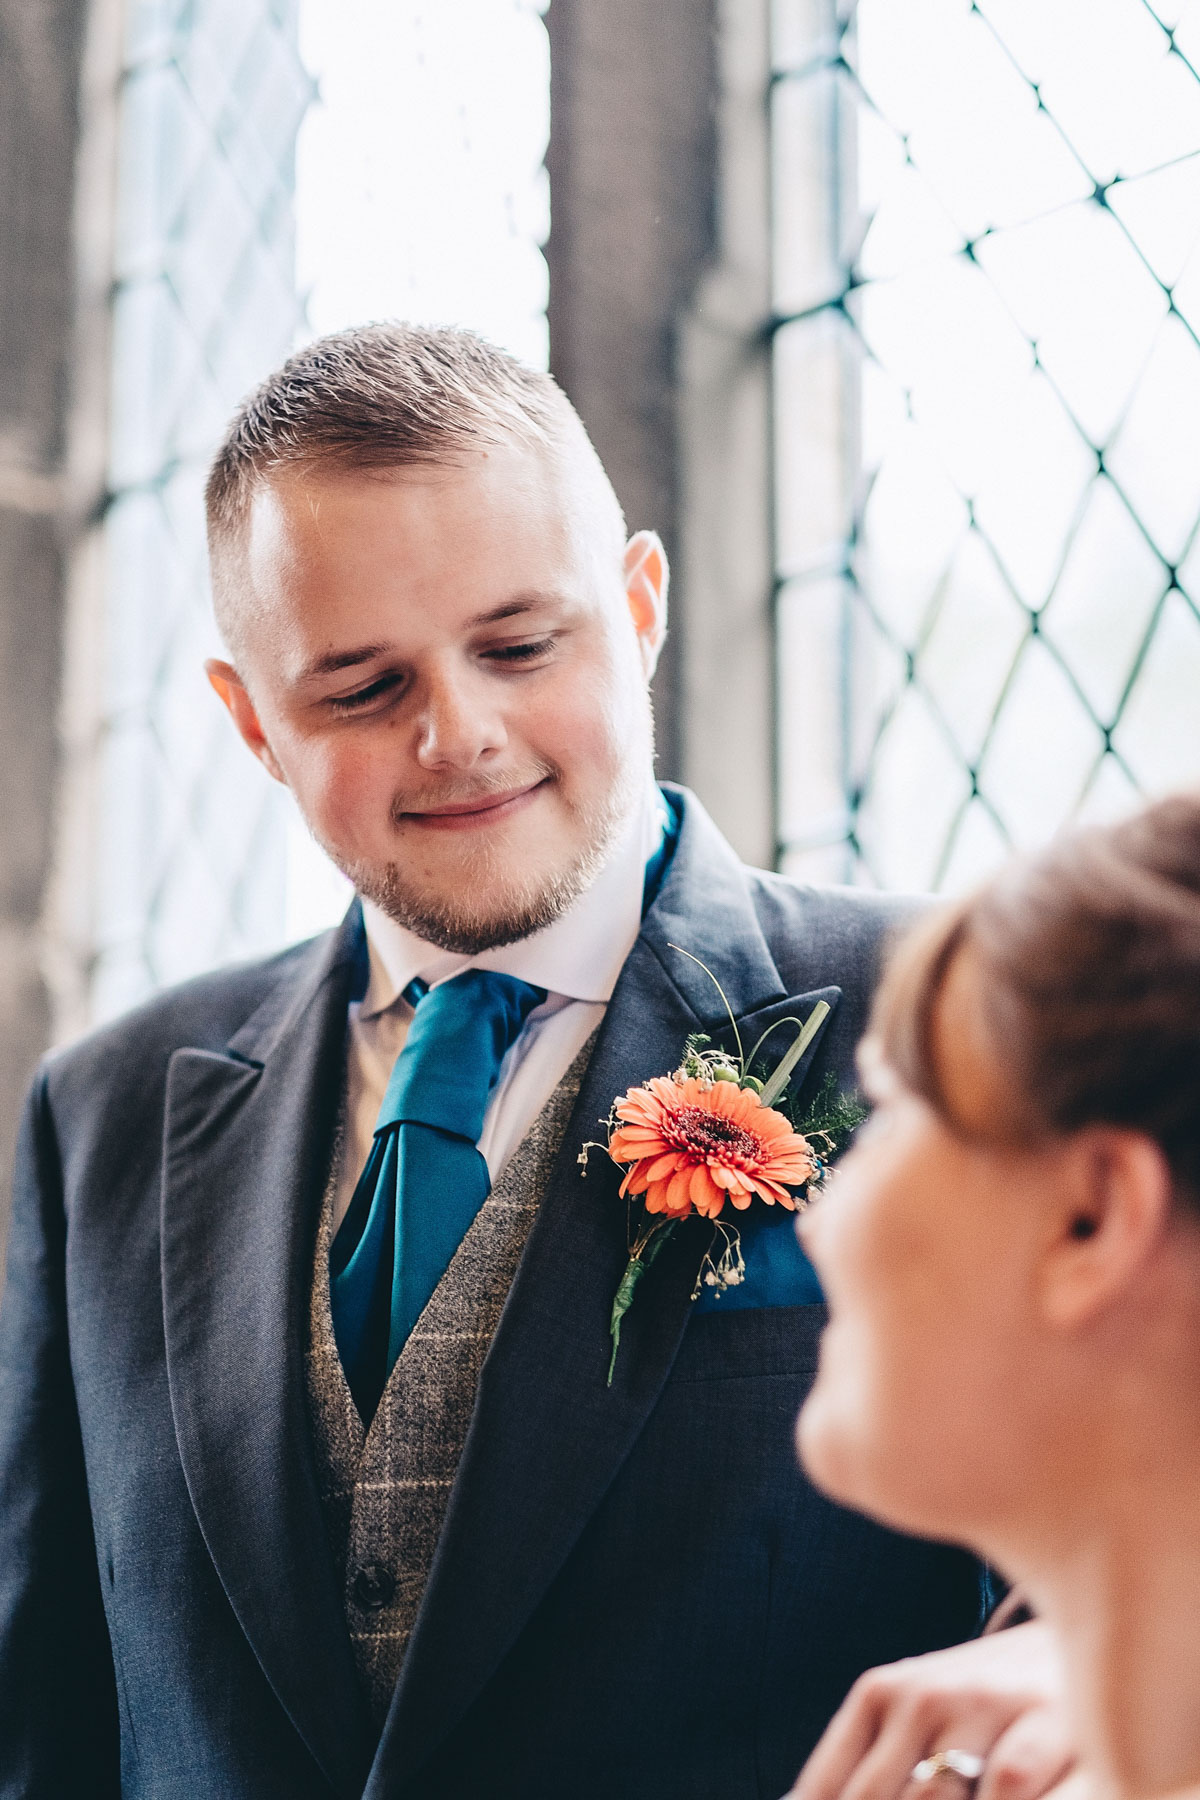 Groom looks down at his new wife